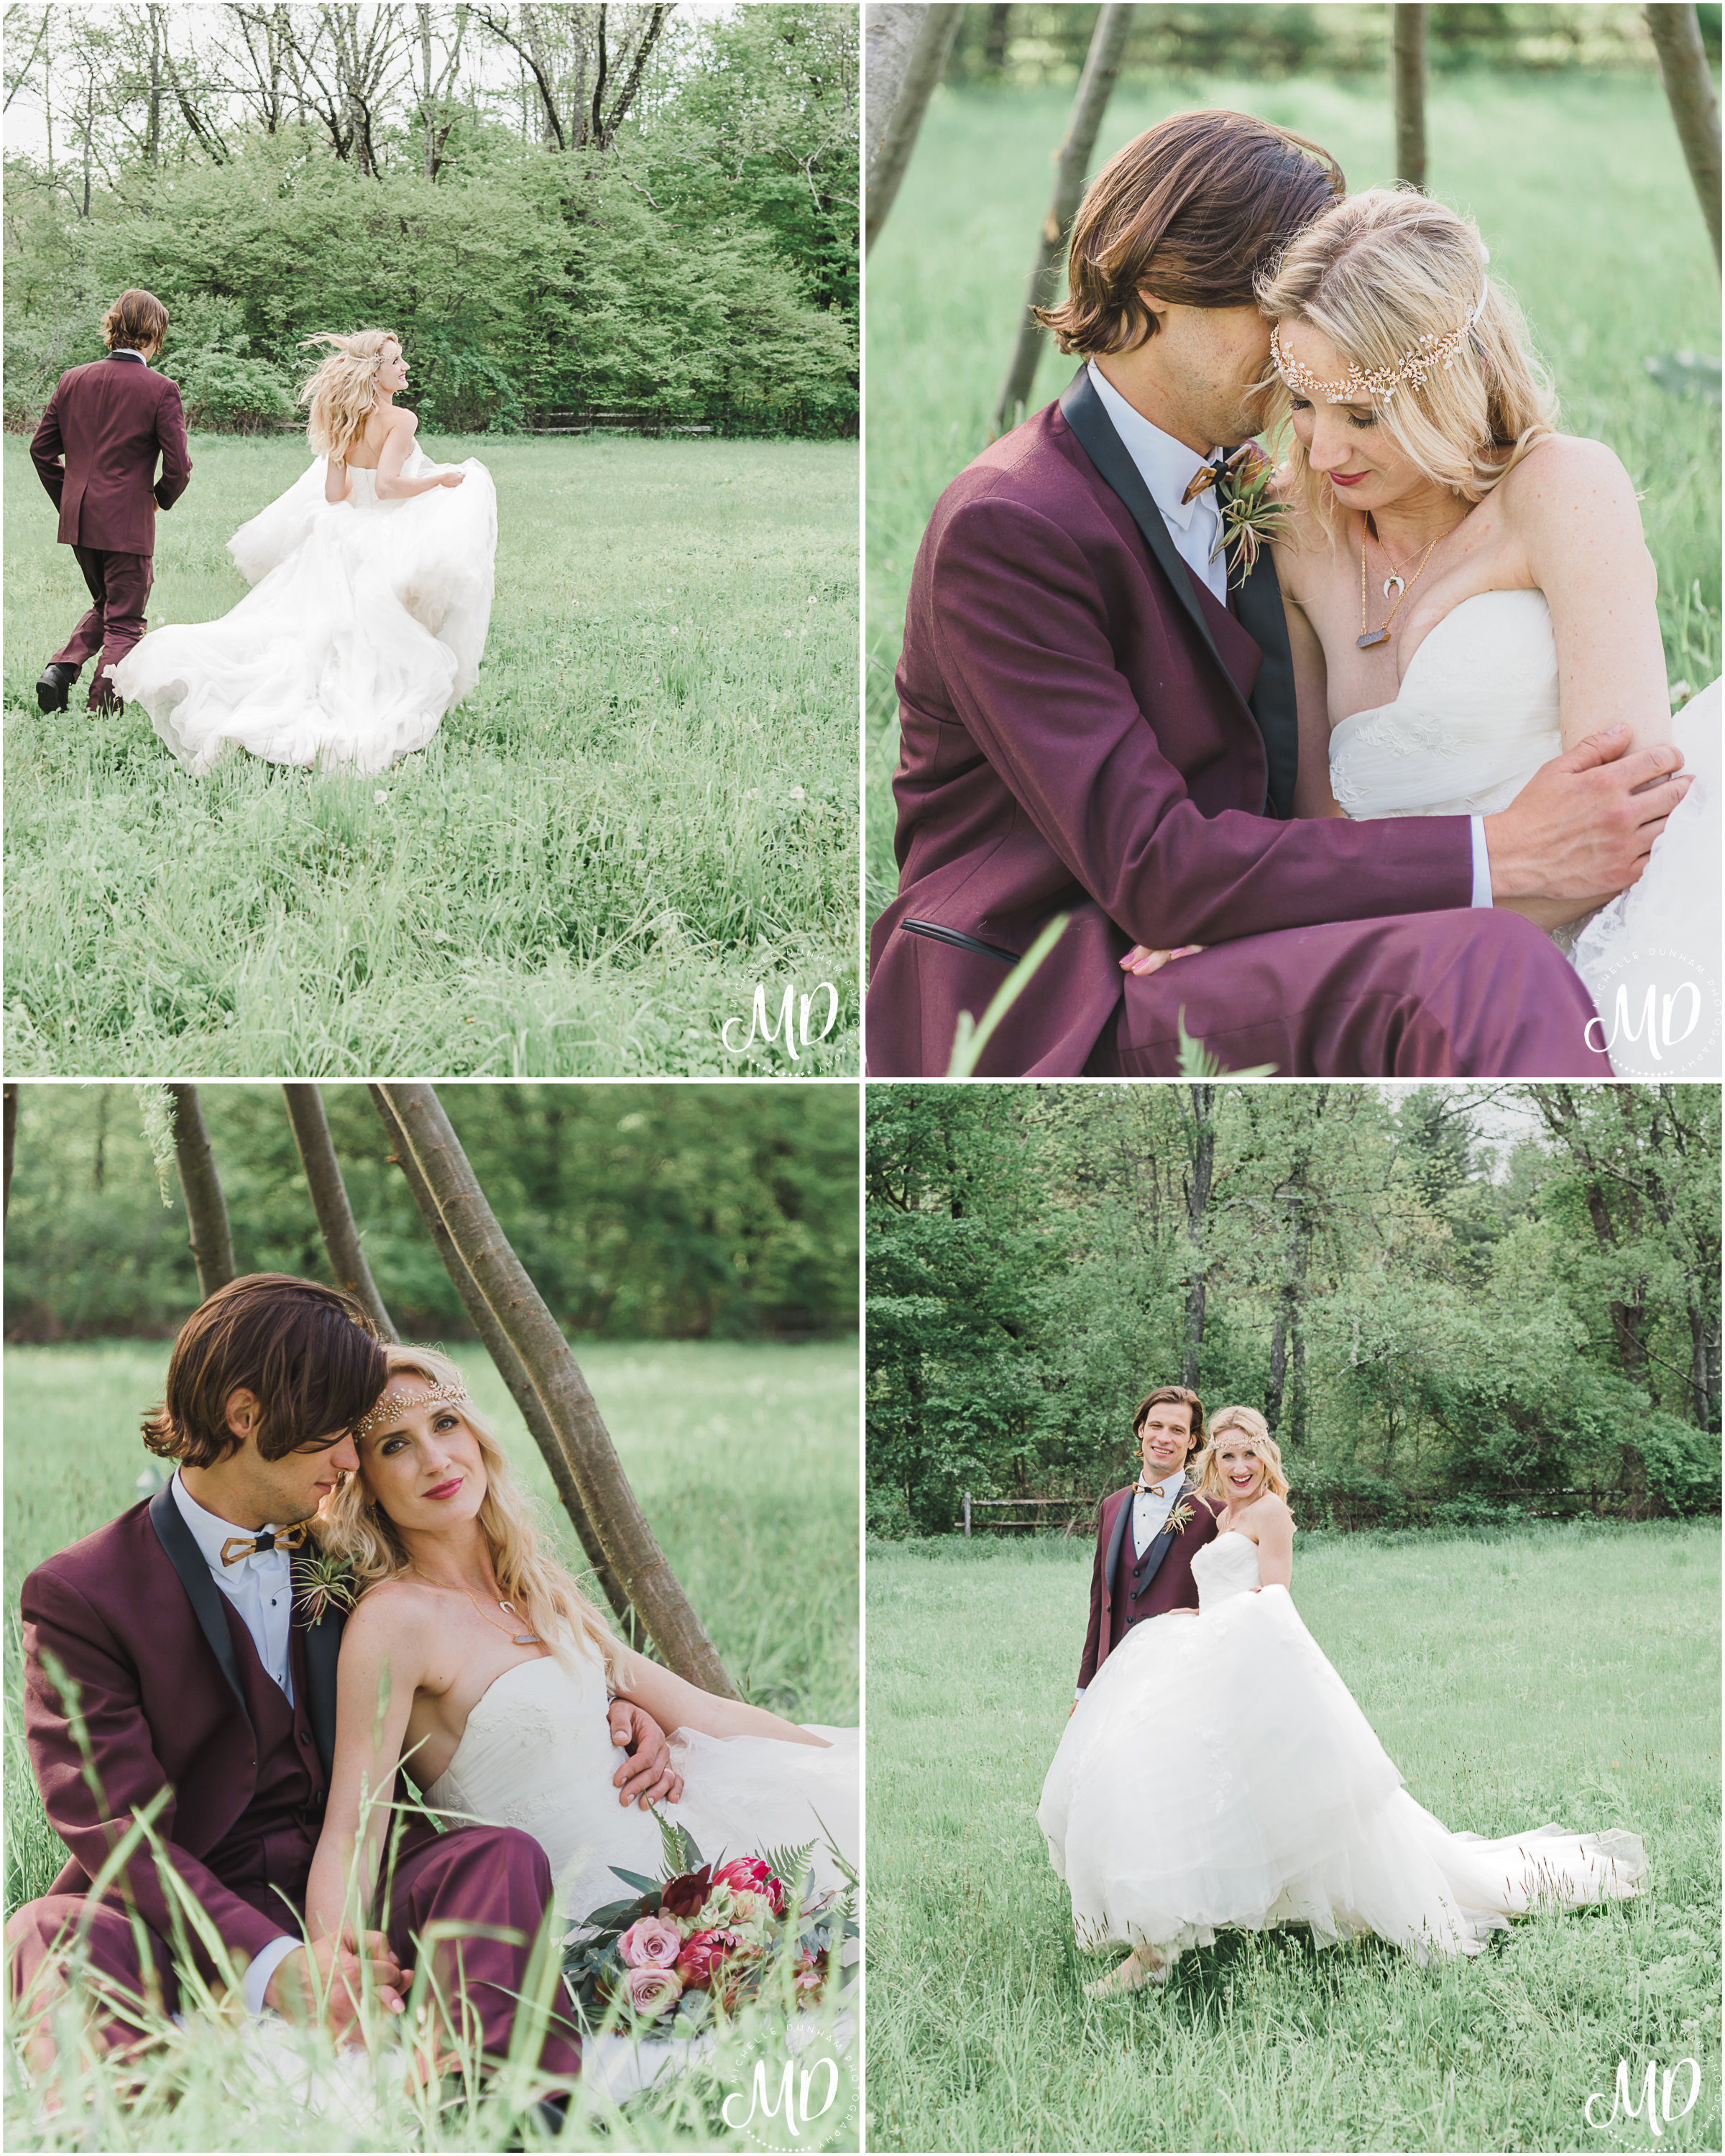 Michelle Dunham Photography_Boho_BrideandGroom_5.jpg